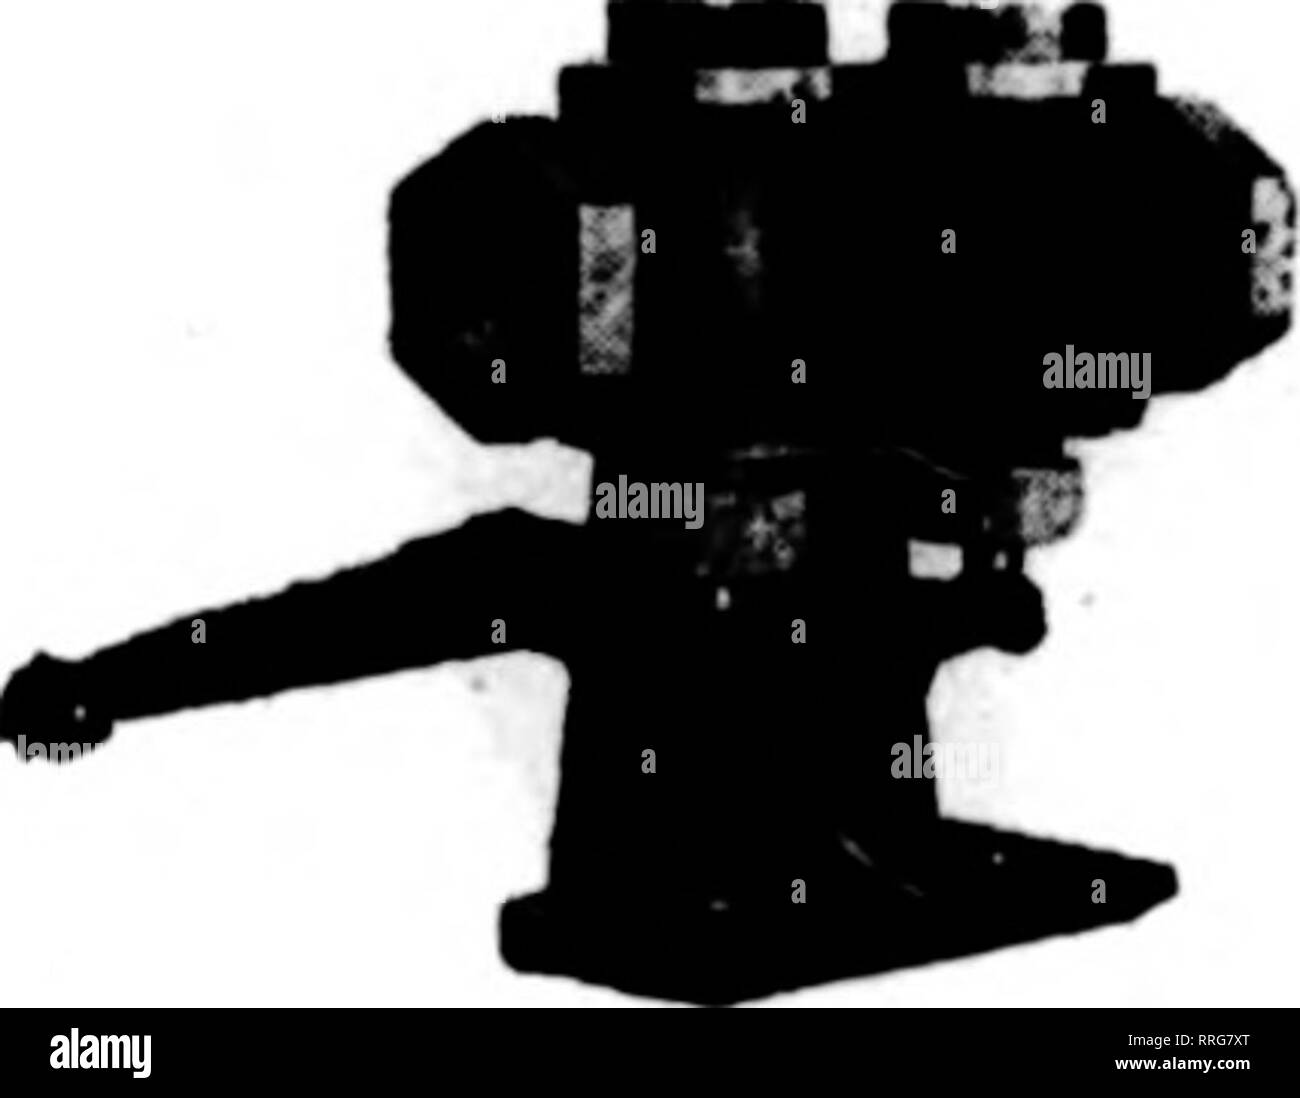 Rai 1 Black and White Stock Photos & Images - Alamy